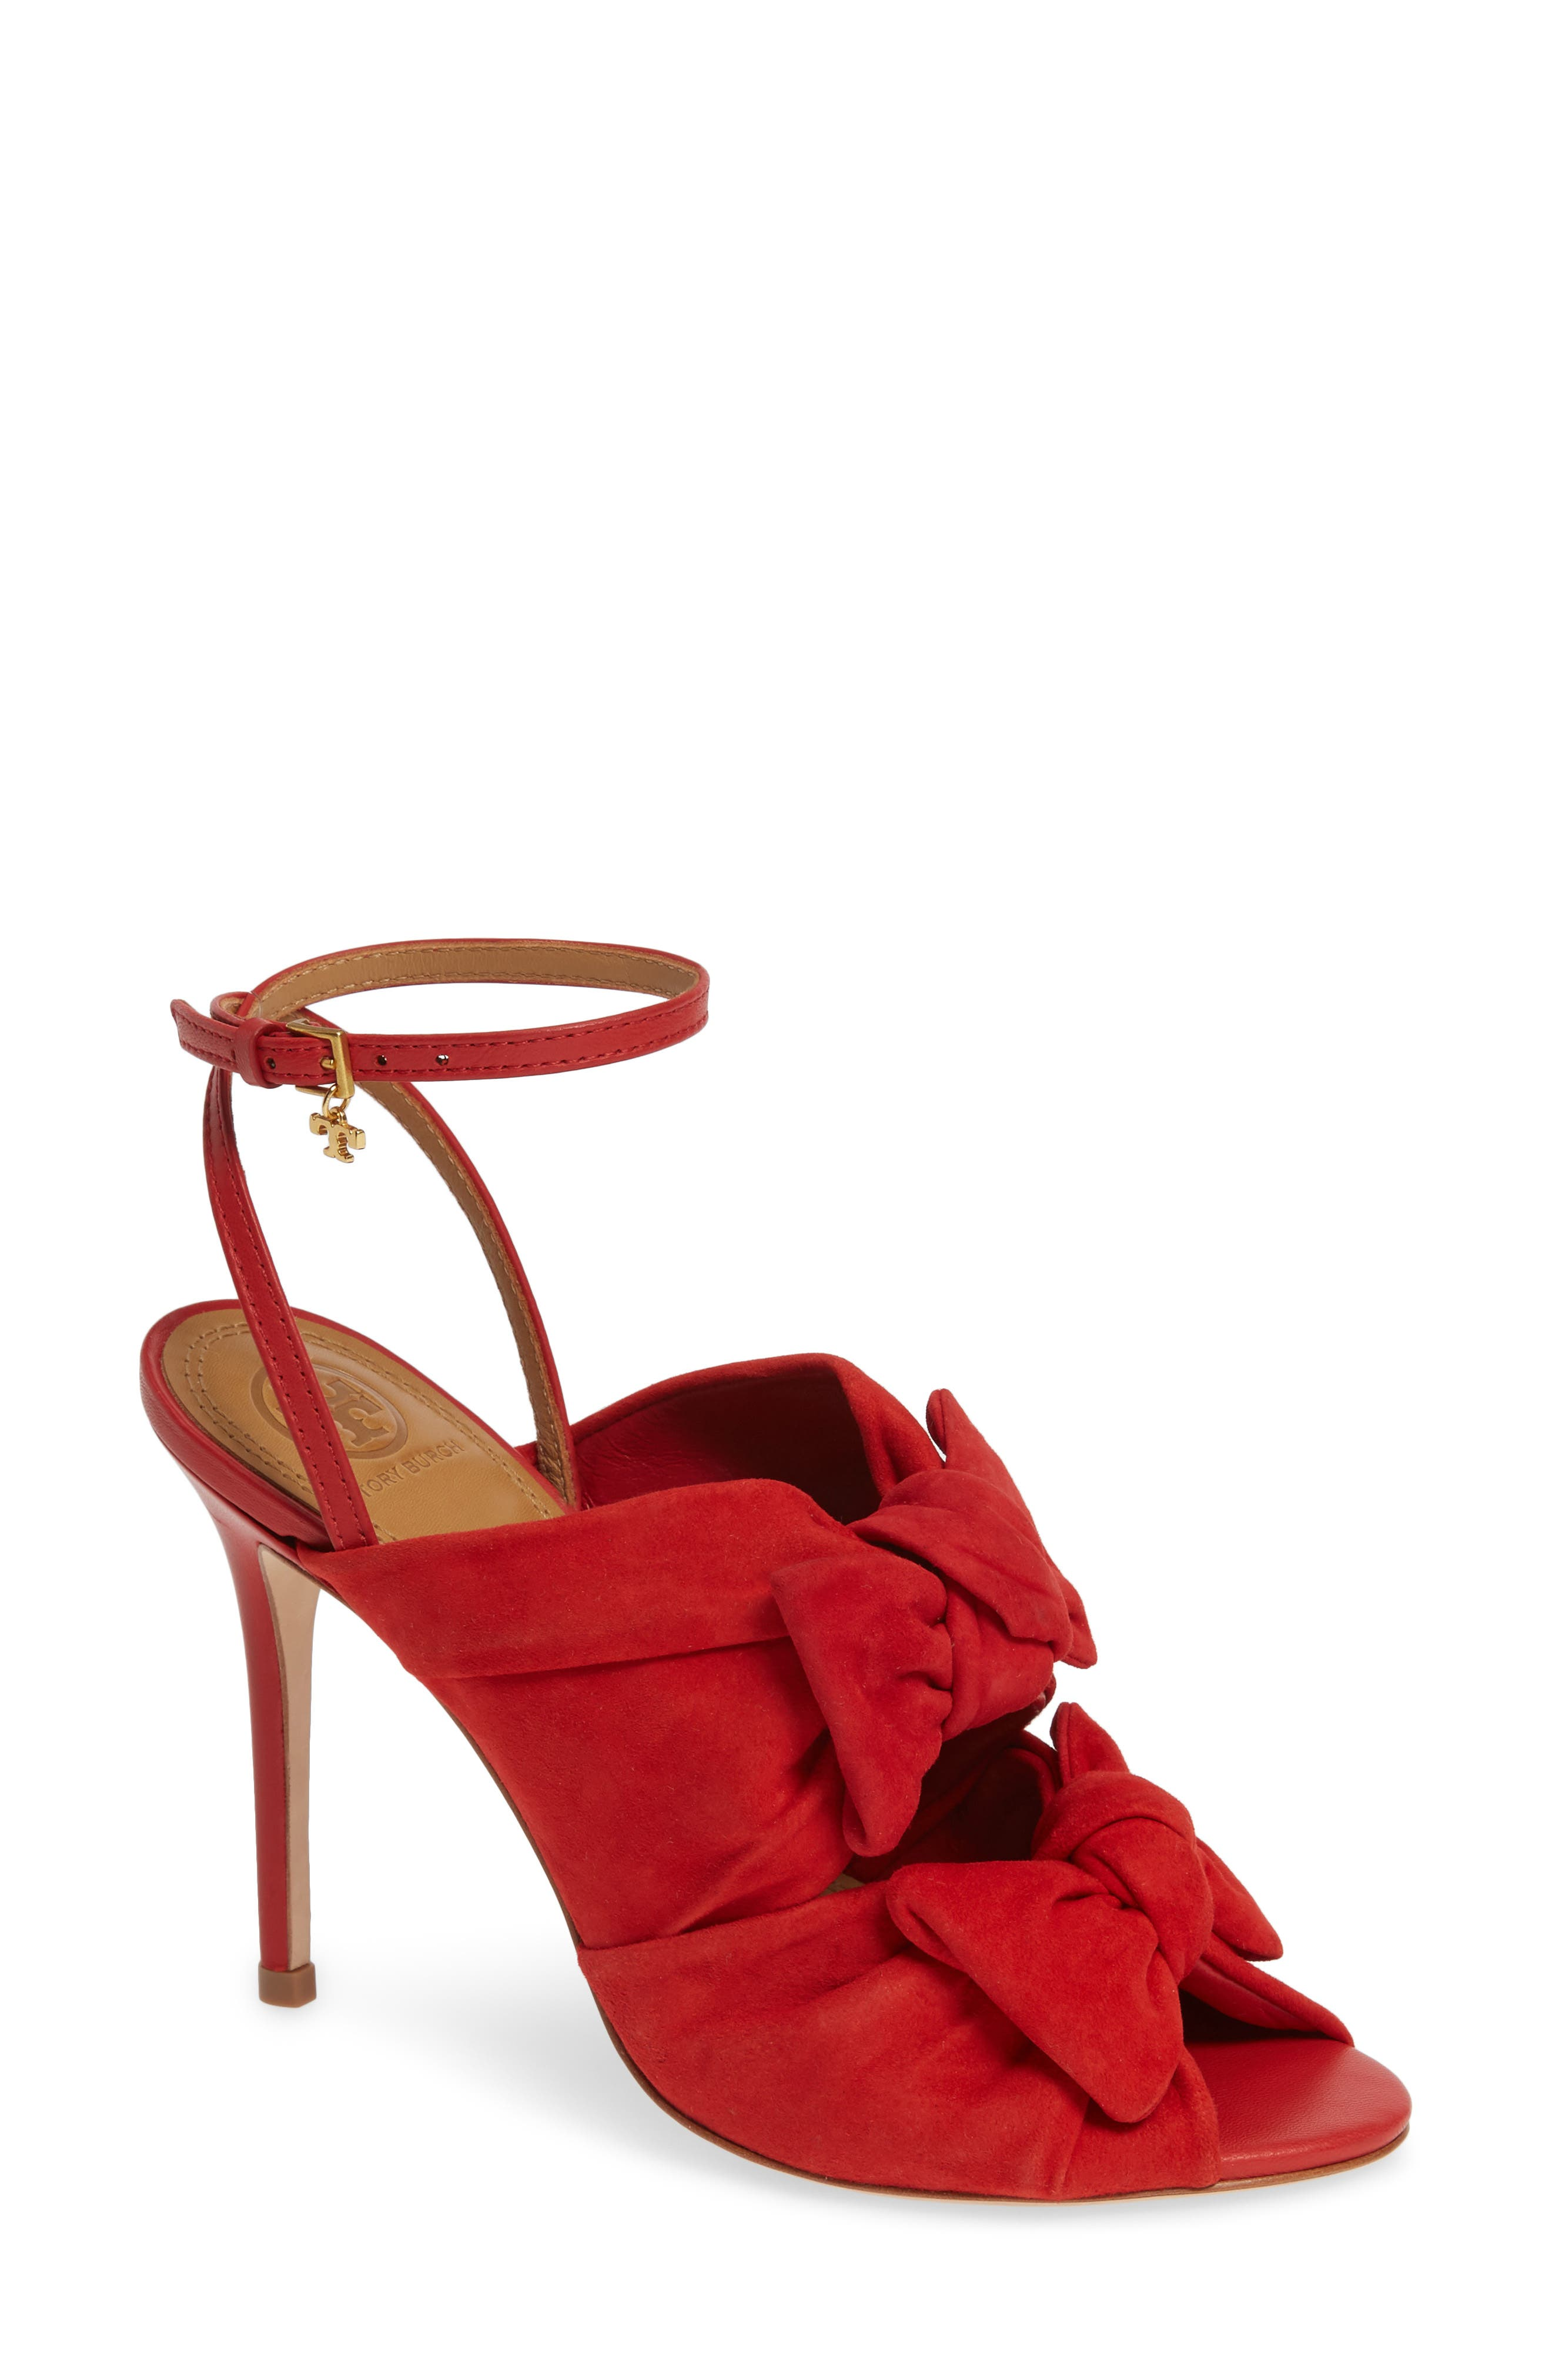 Tory Burch Eleanor Knotted Sandal, Red